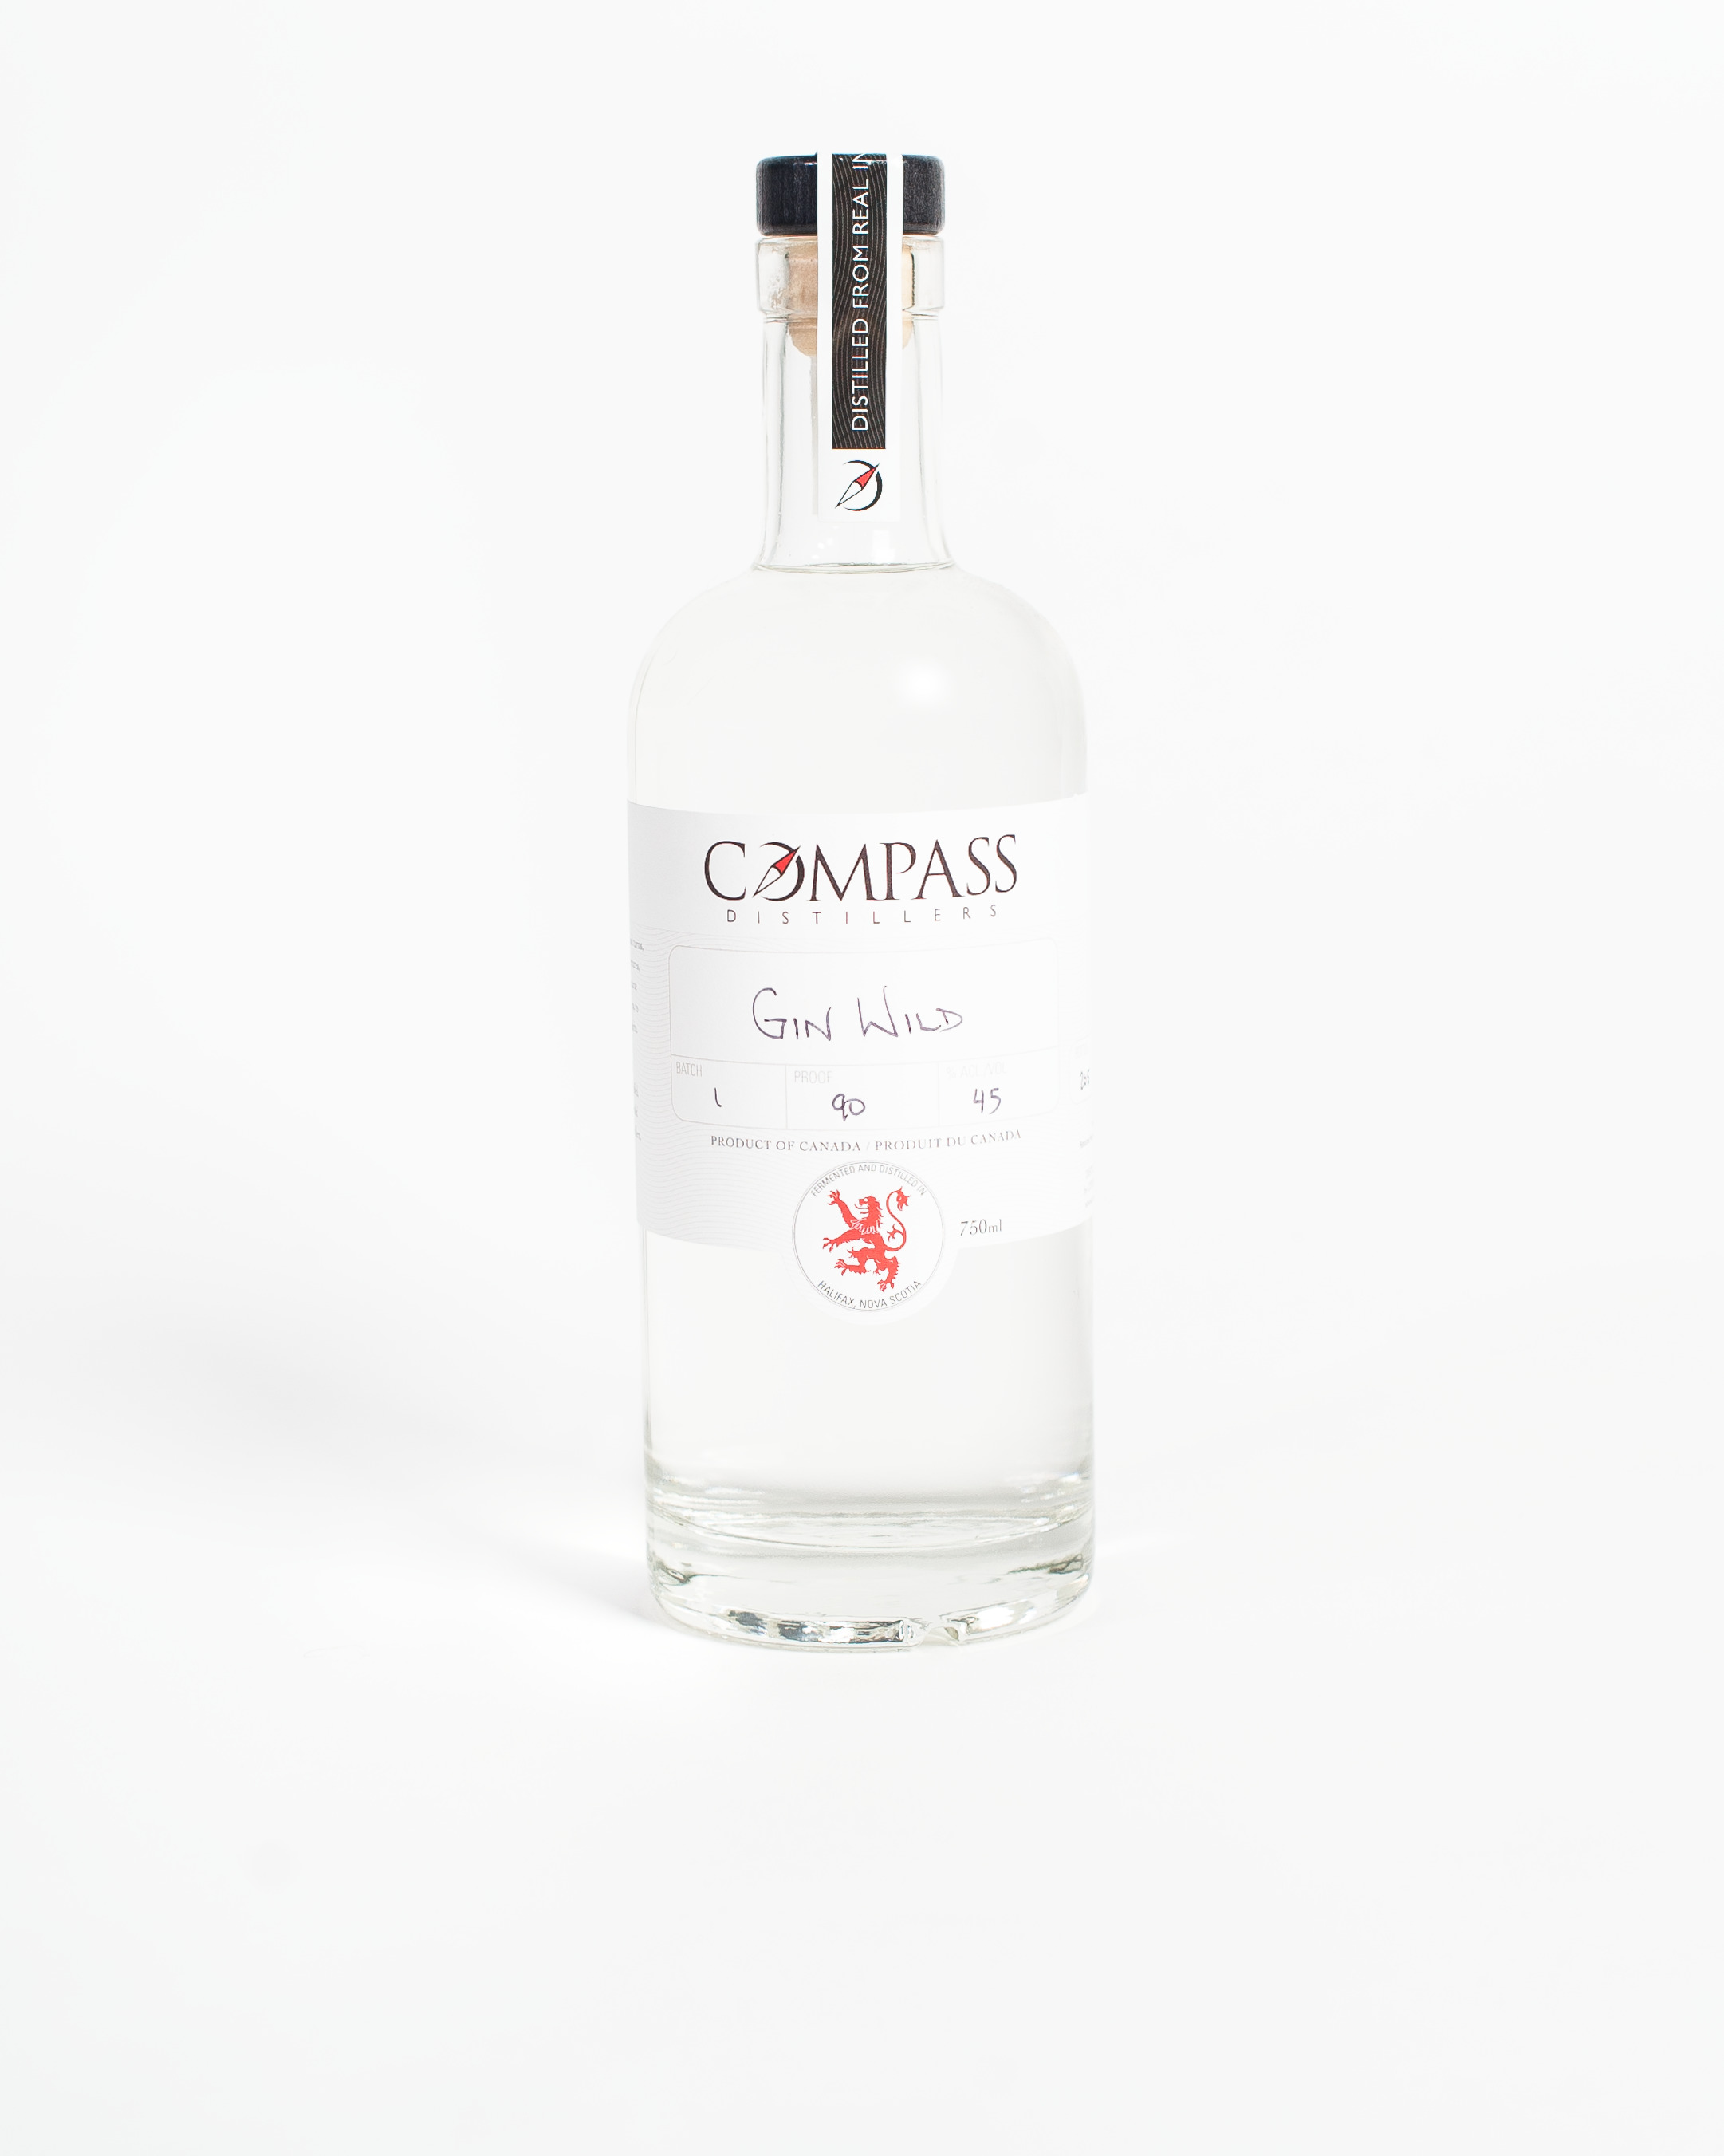 A product image for Compass Gin Wild